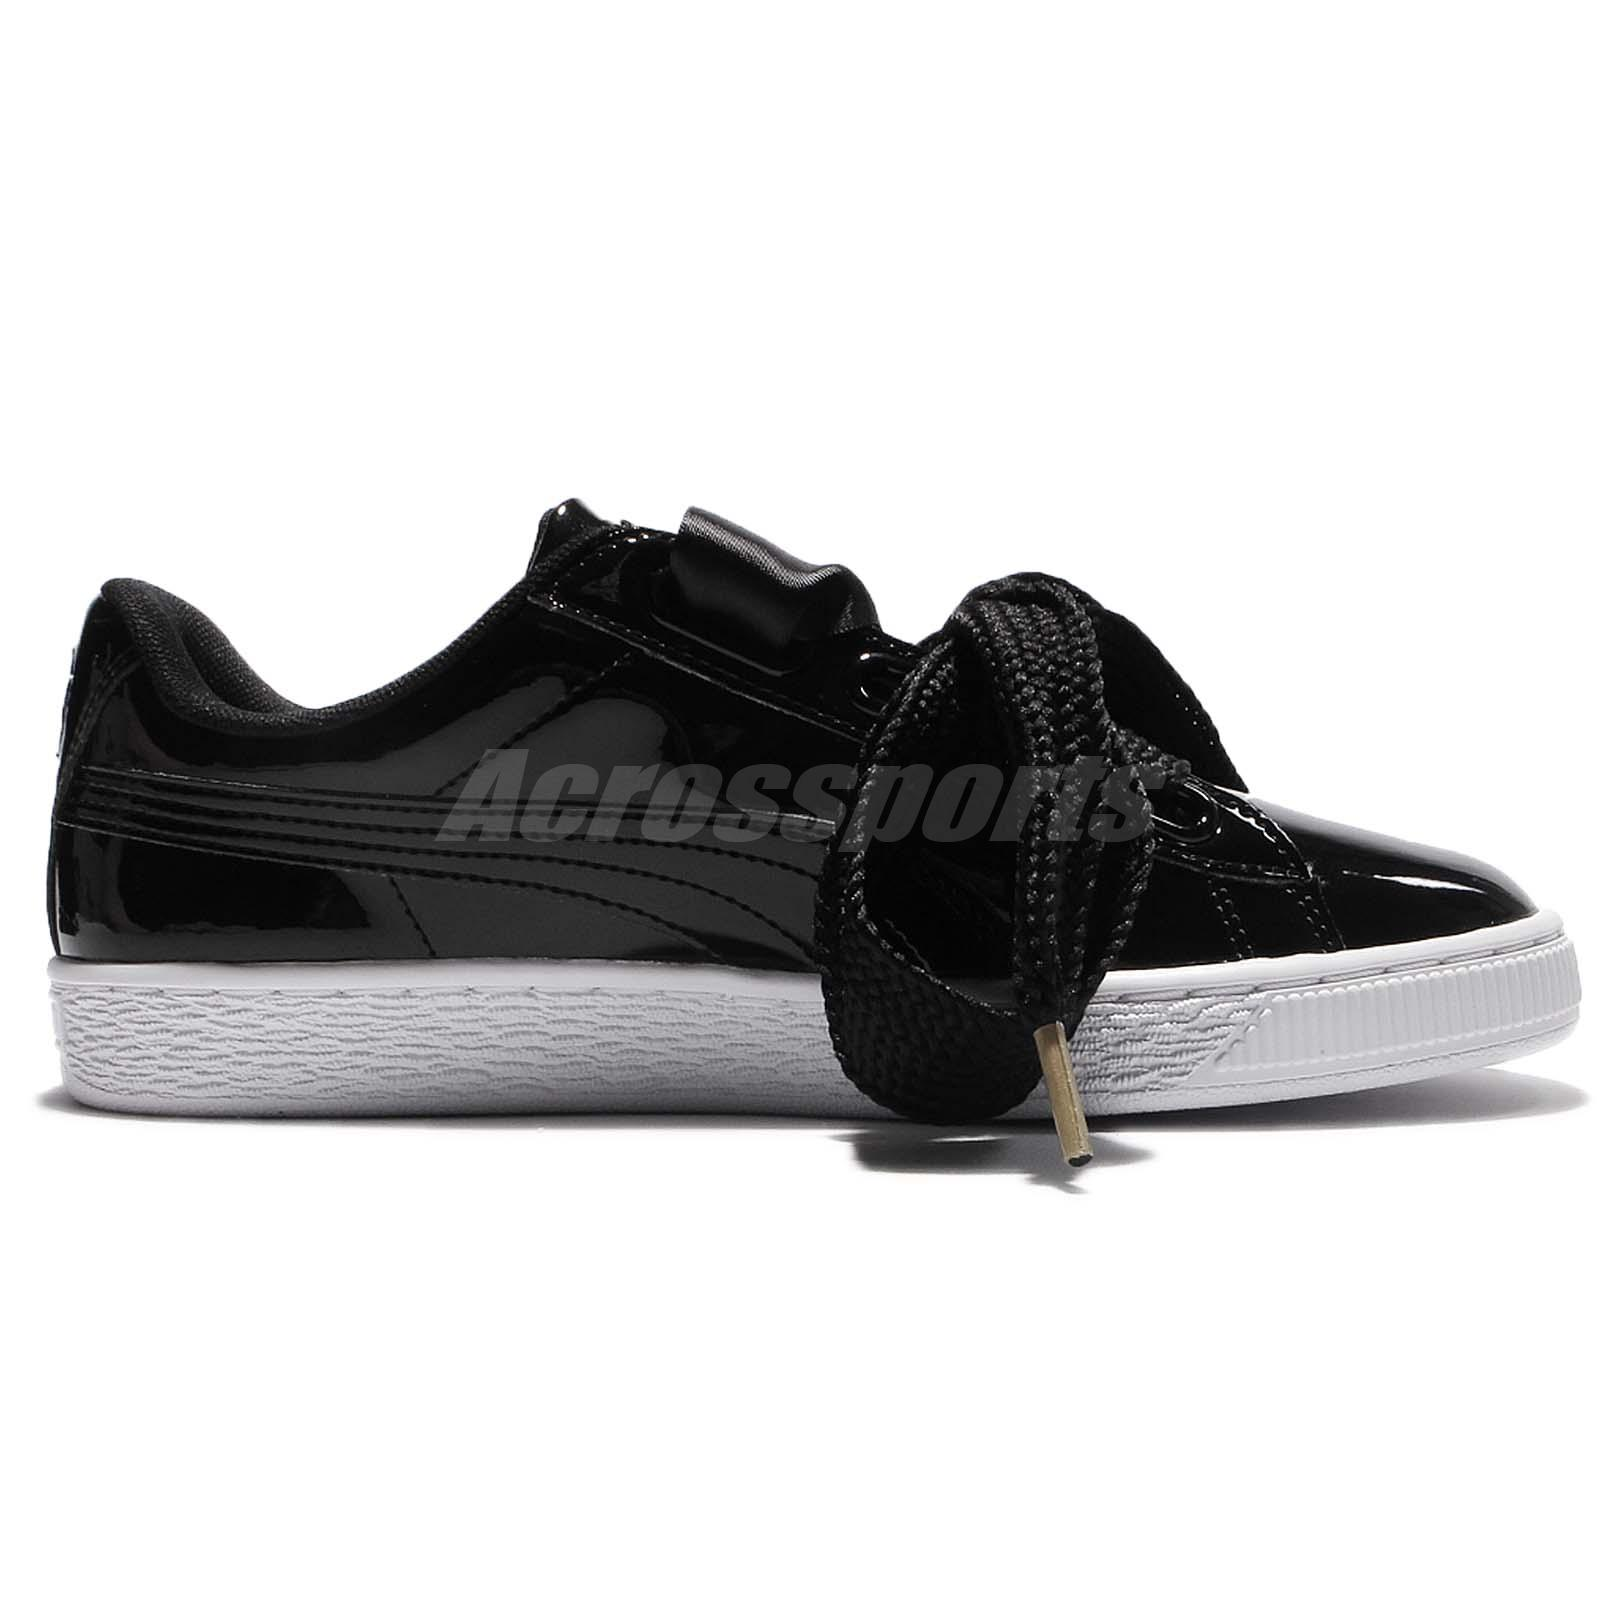 Details about Puma Basket Heart Patent Wns Black White Bow Women Shoes Sneakers 363073 01